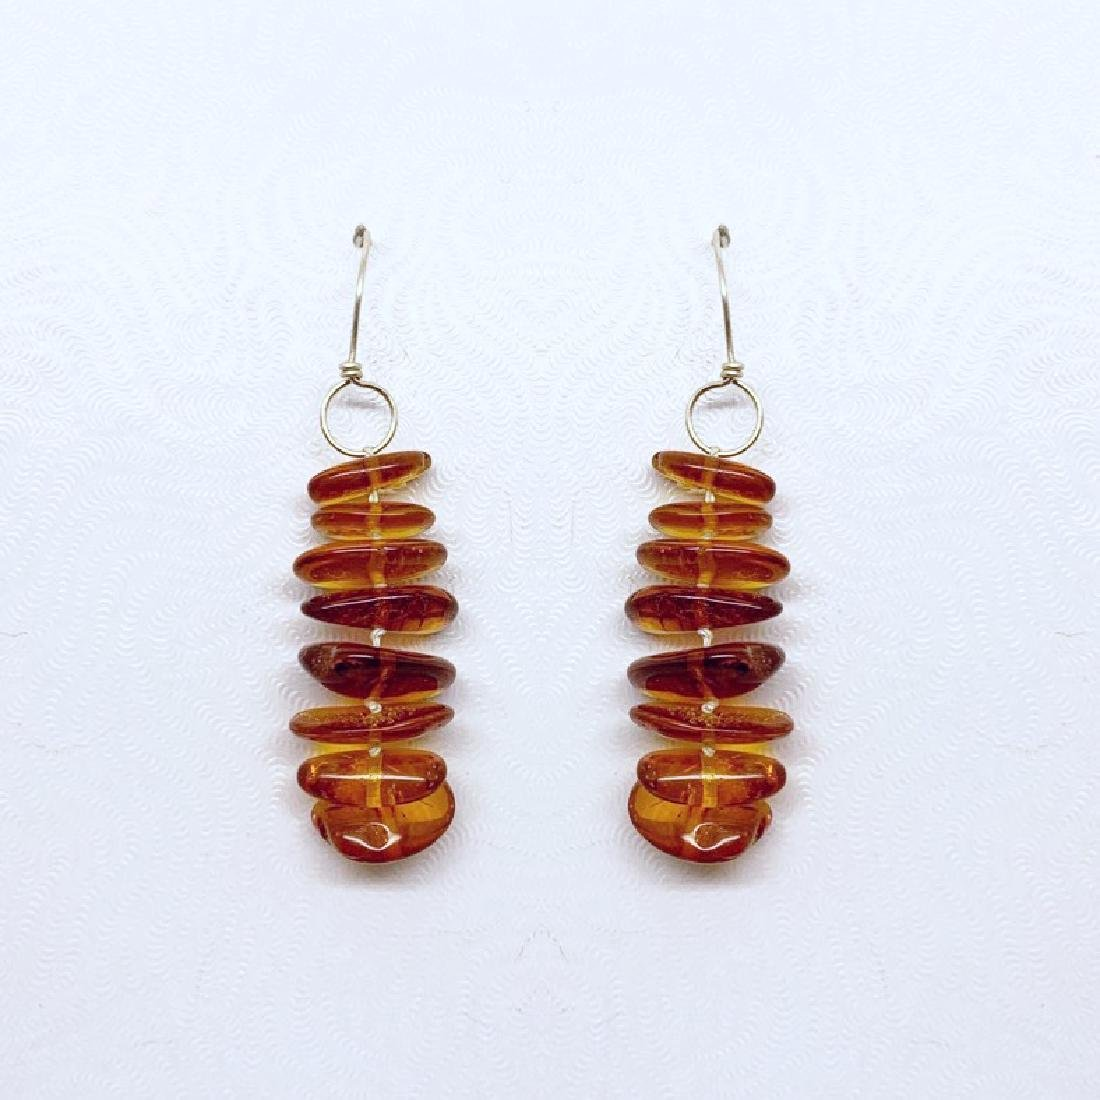 sterling silver baltic amber bead earrings #10 - 3